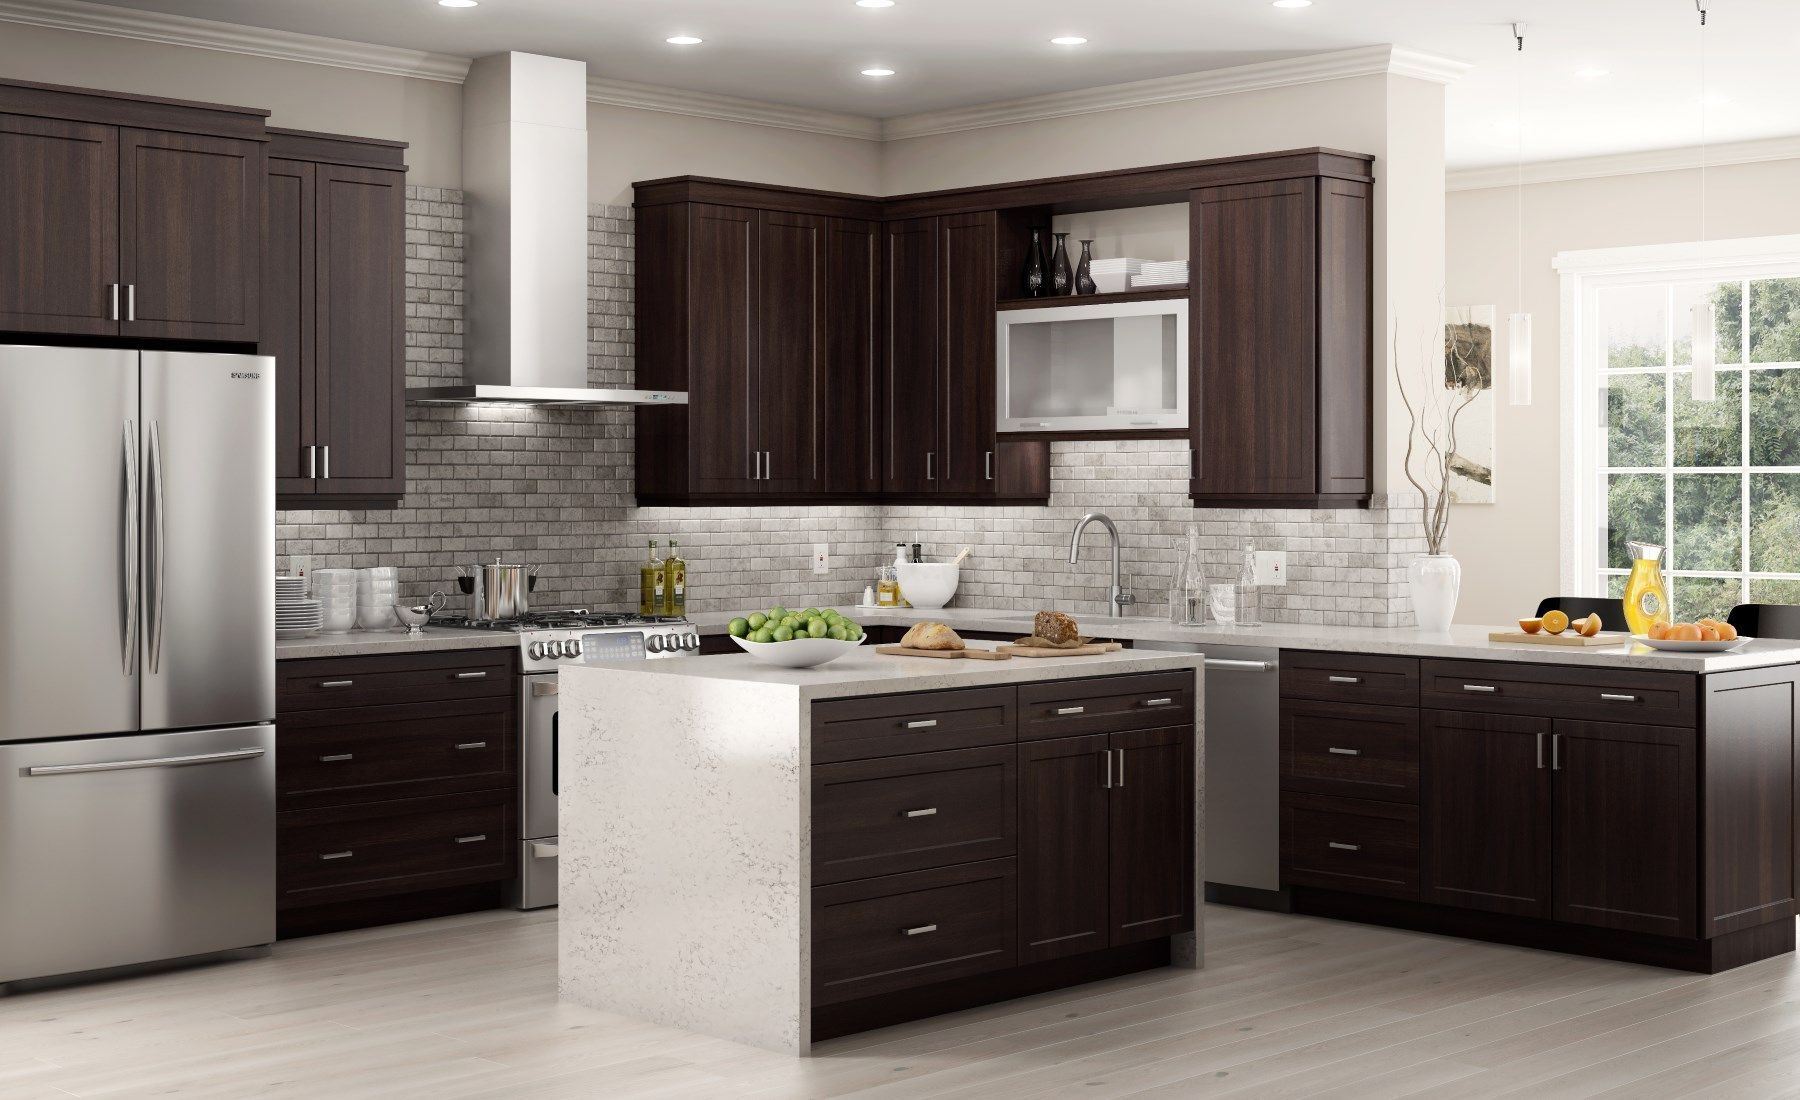 style of cabinets kitchen mission wall depot design new home luxury cabinet